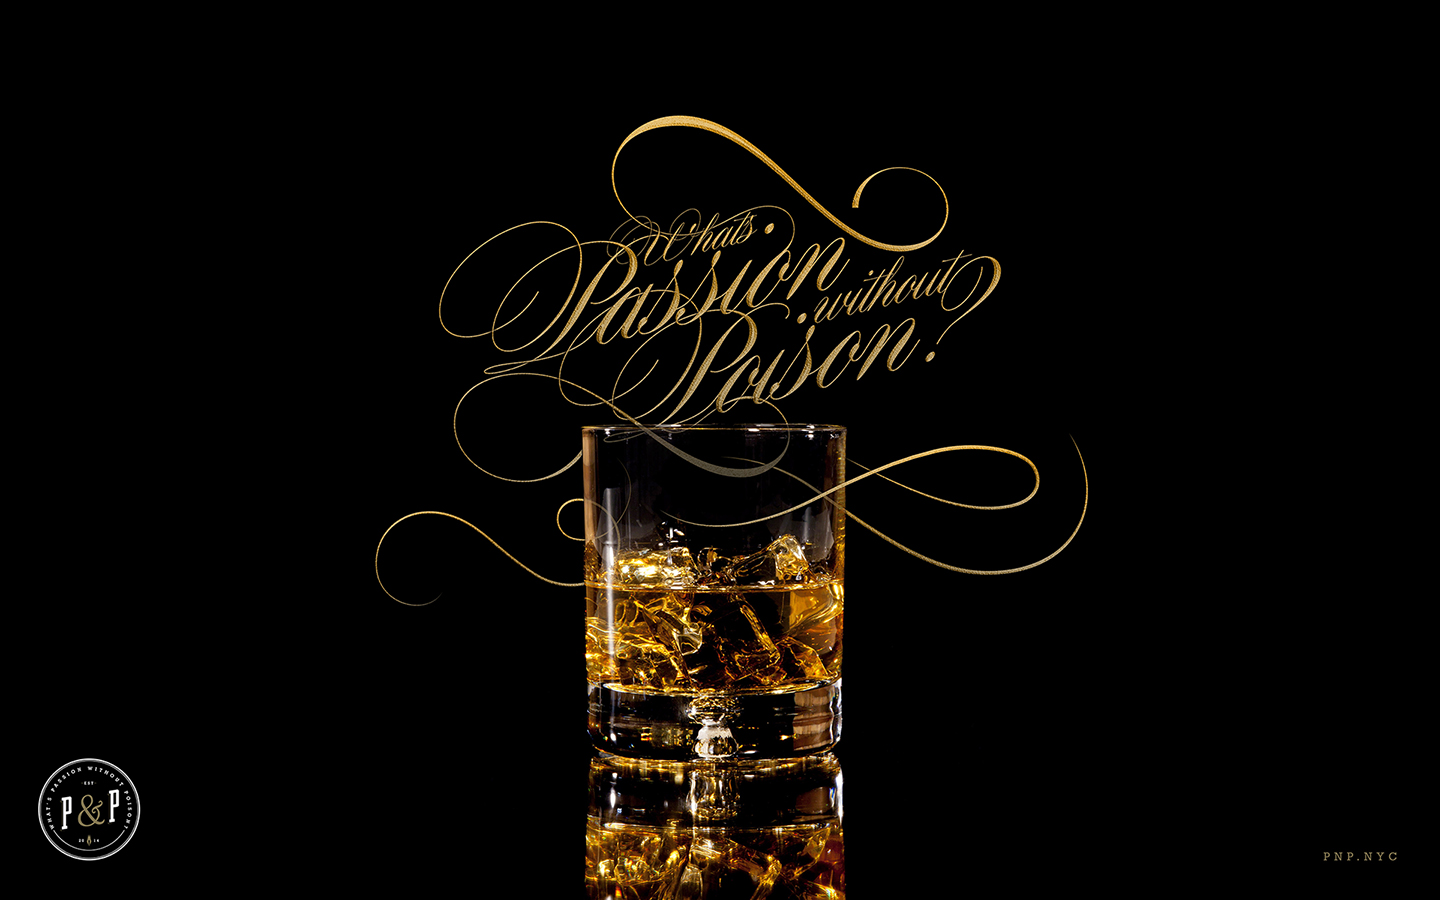 Whats_Passion_Without_Poison_Whiskey_1440x900